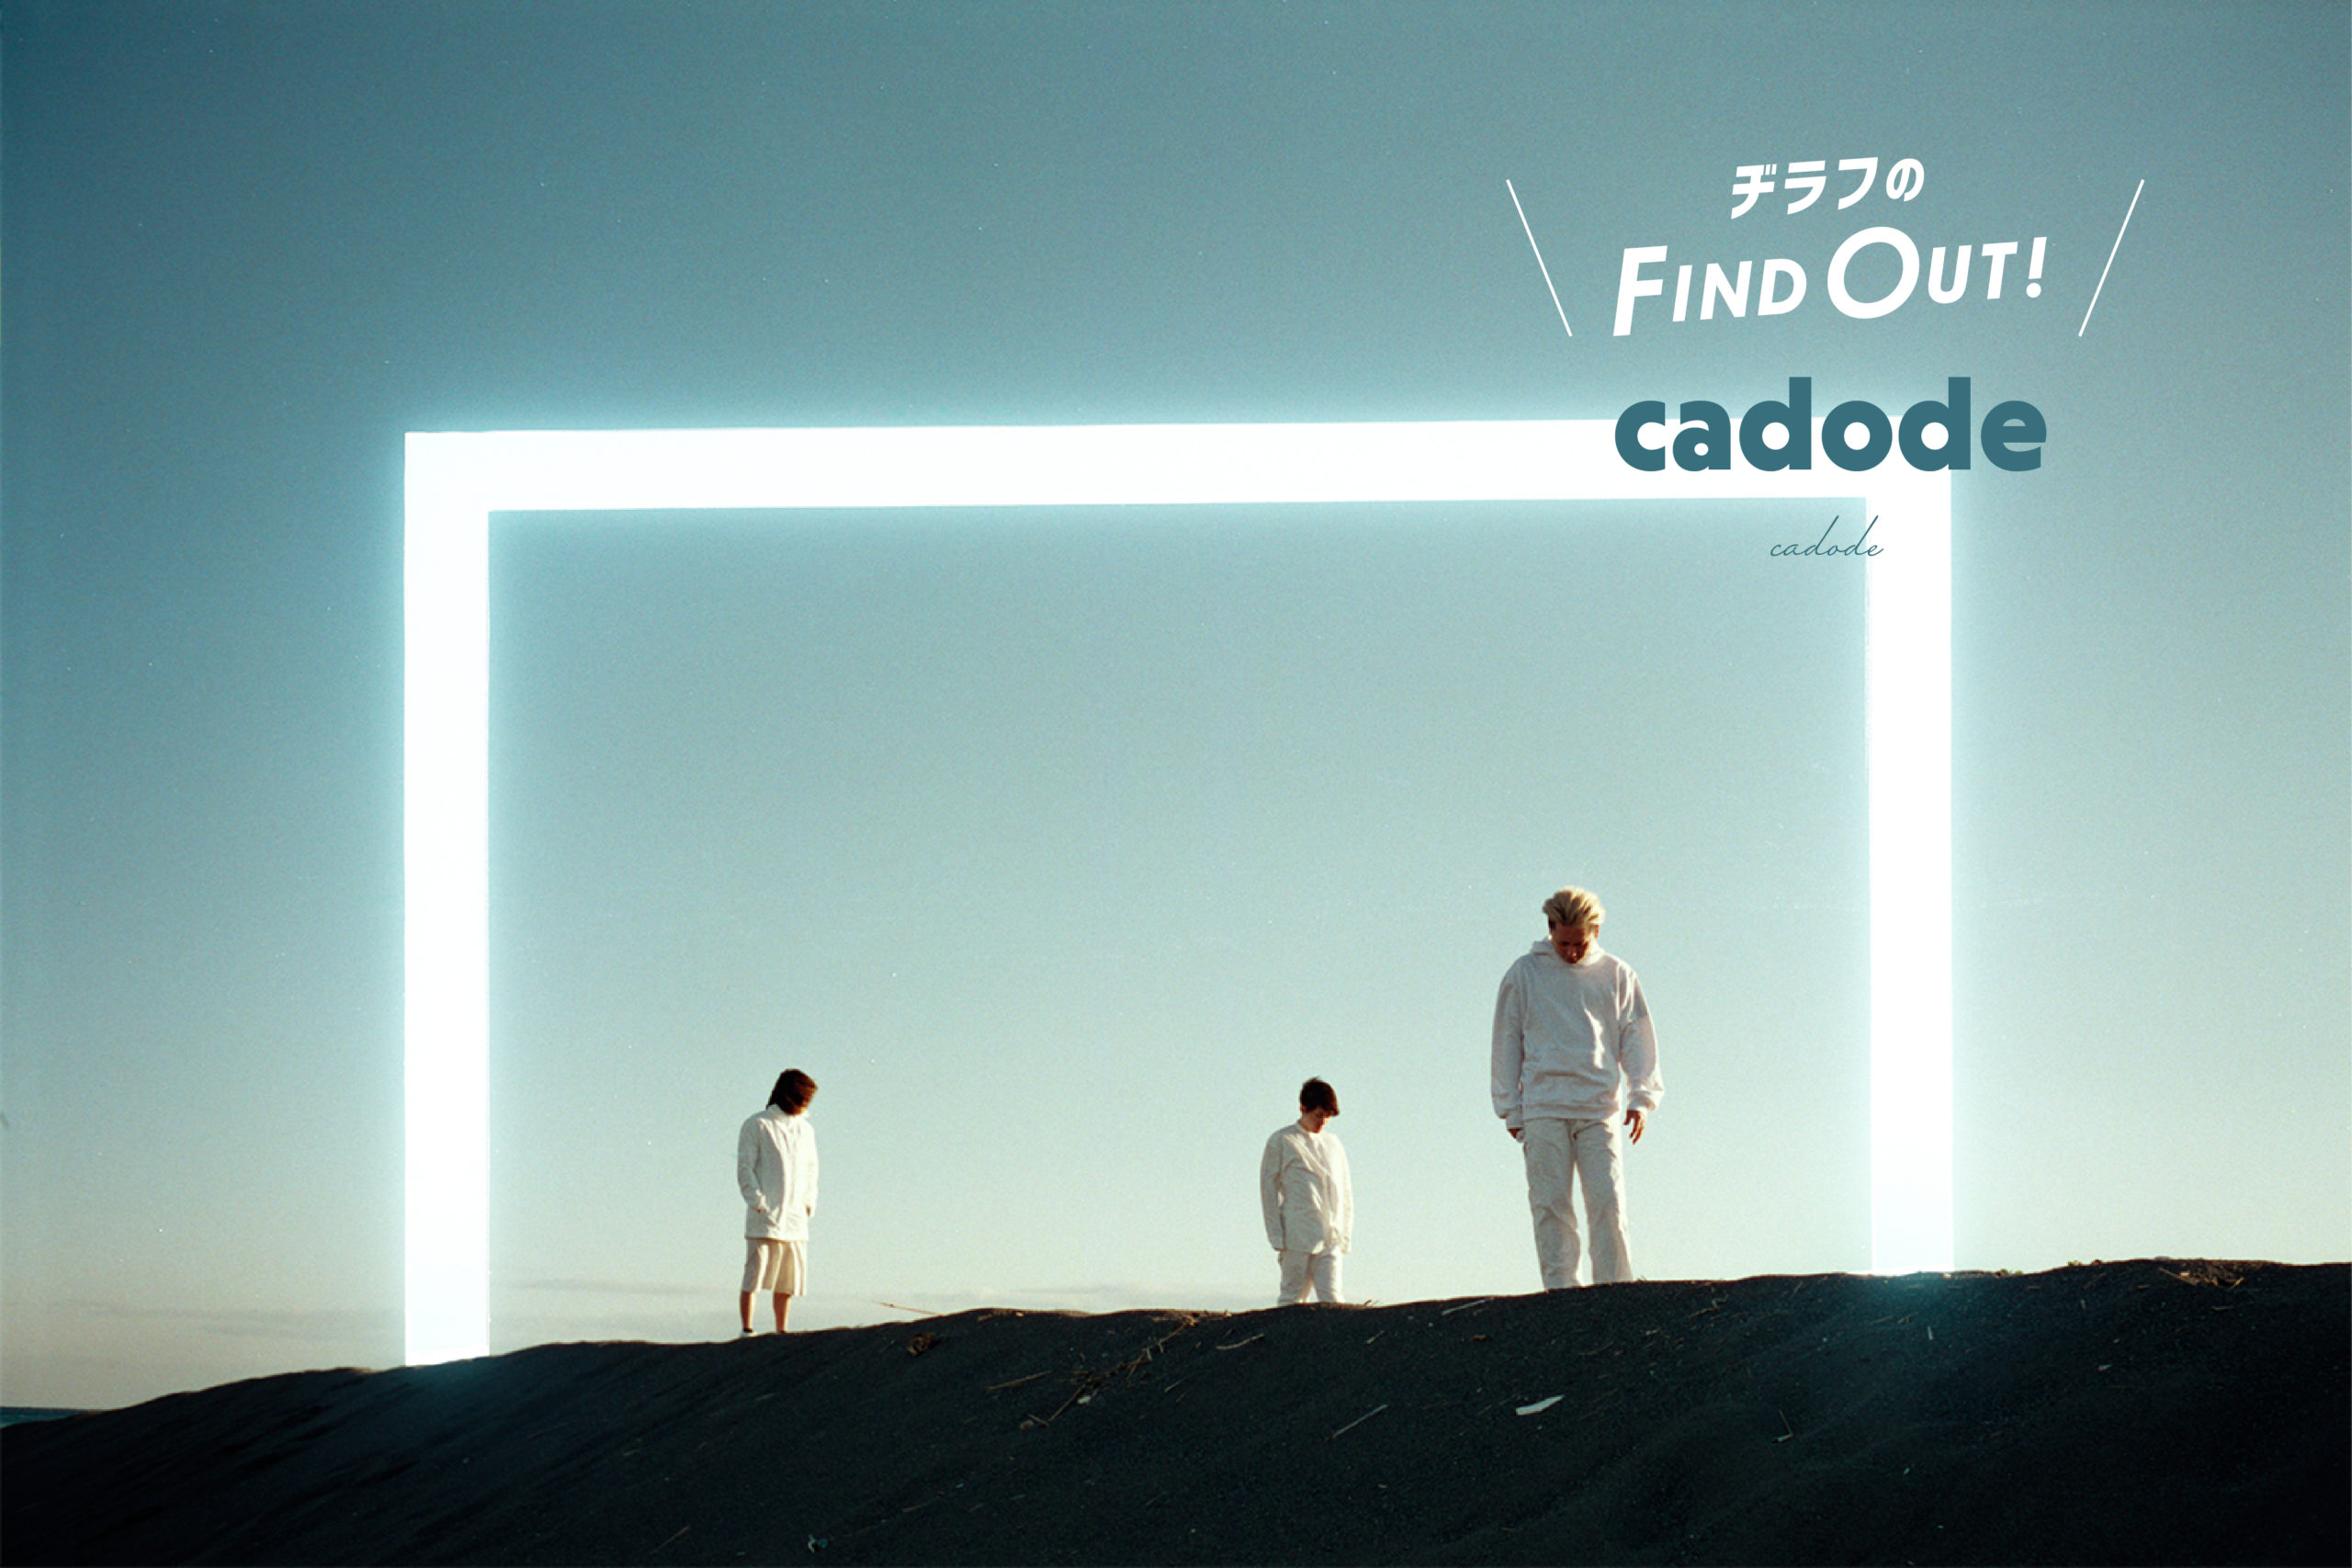 「【cadode】とぎすまされた美意識で音を紡ぐ、音楽プロダクト・cadode」のアイキャッチ画像